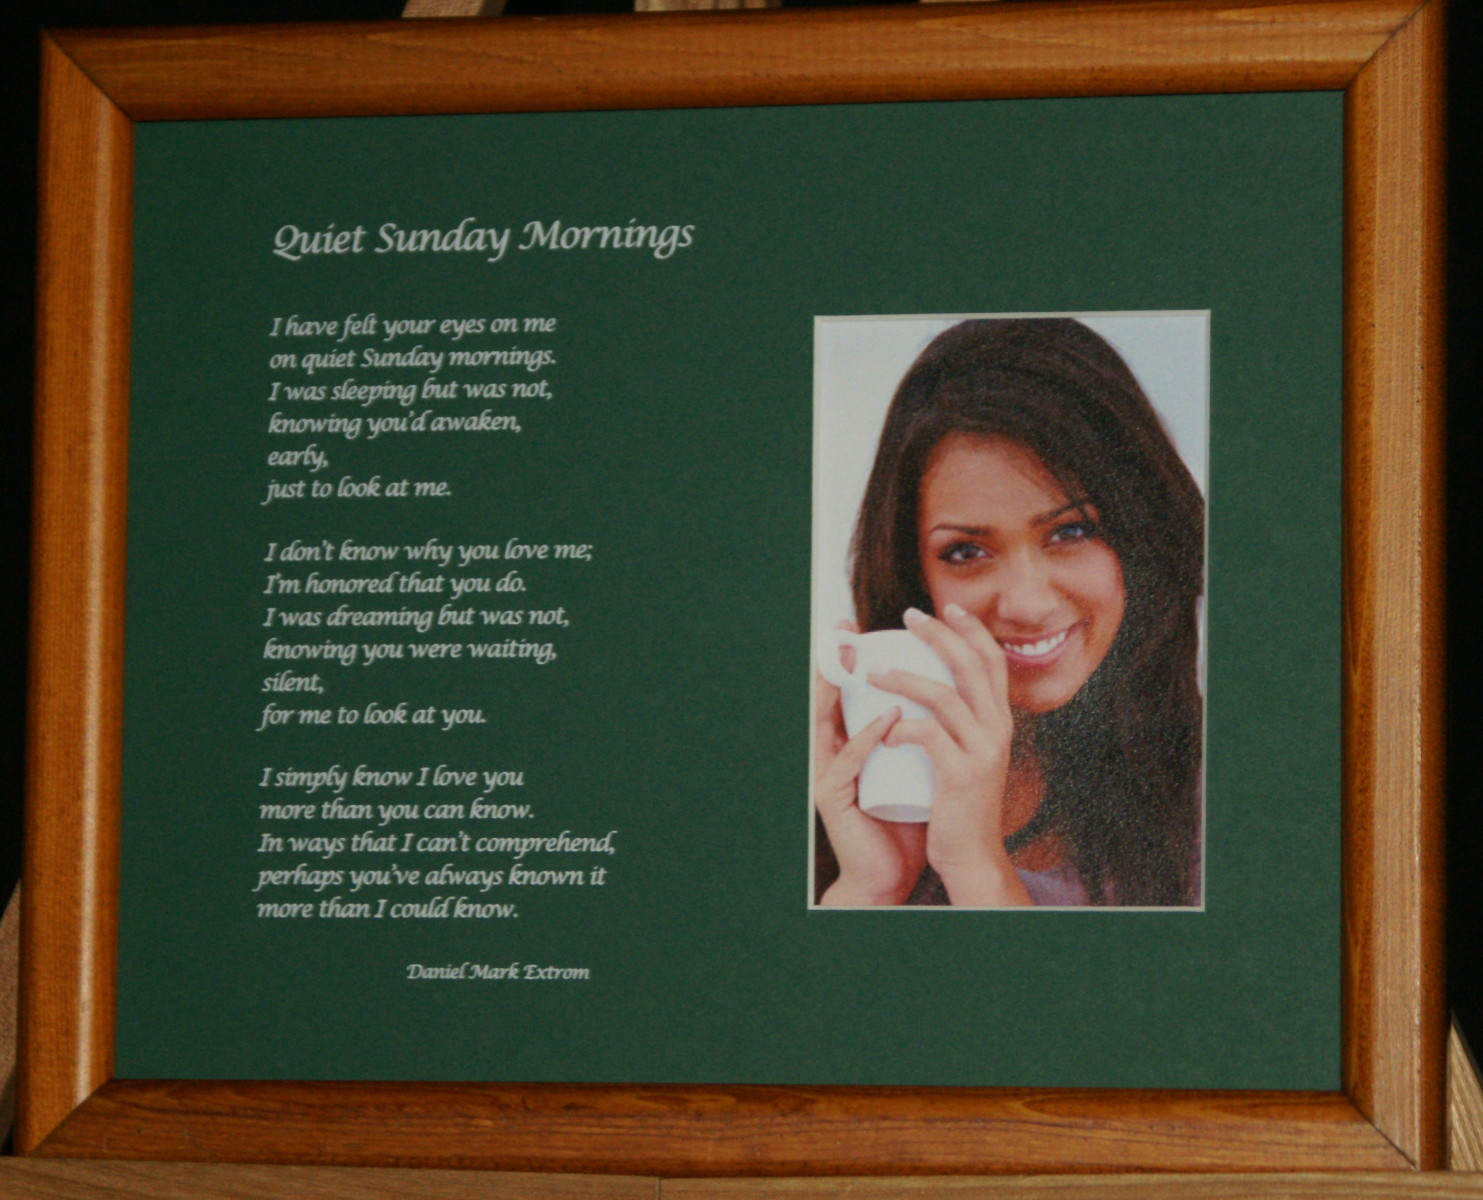 Quiet Sunday Mornings: A Love Poem. In Green.